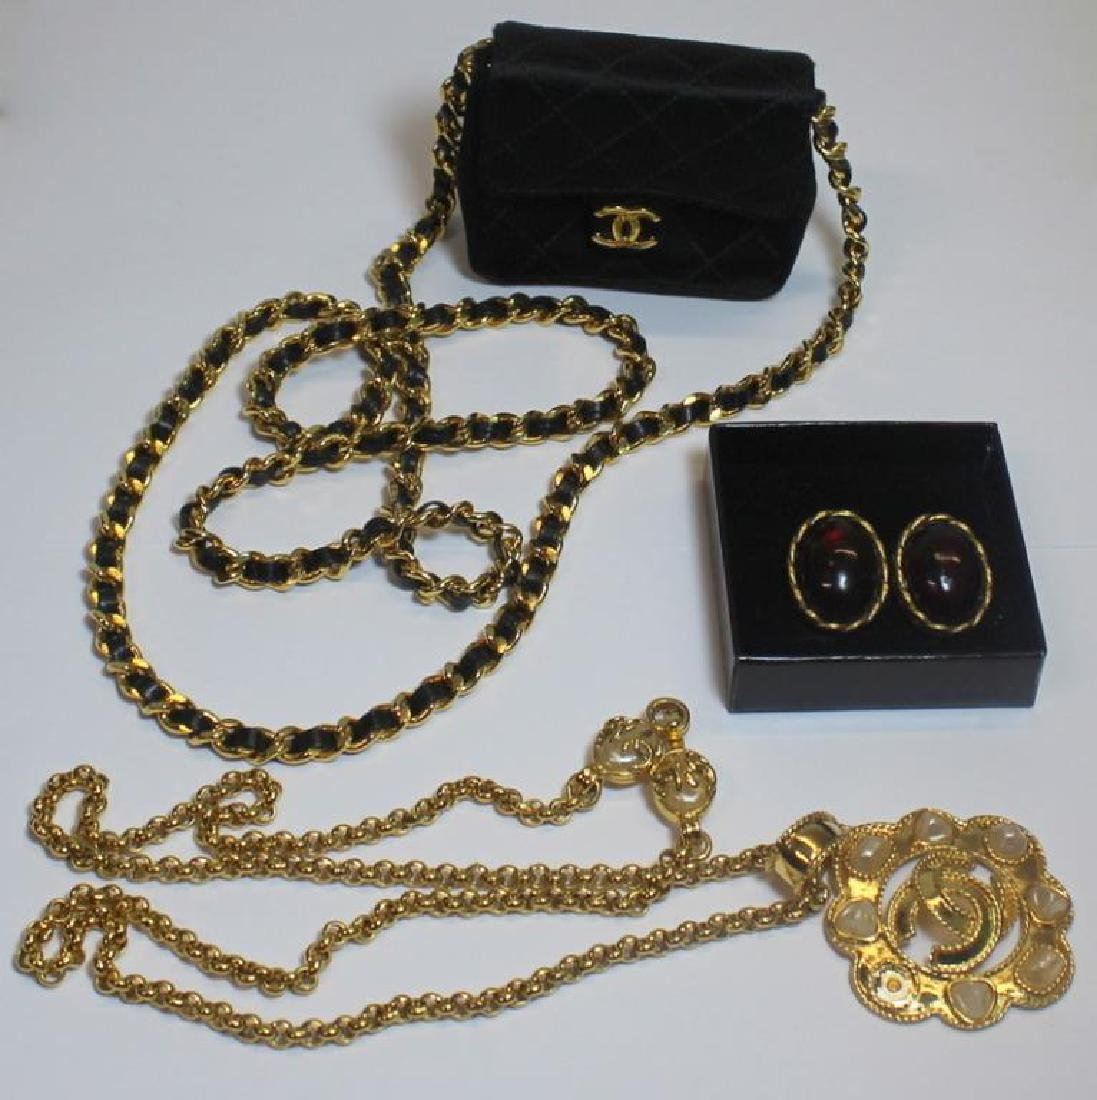 JEWELRY. Chanel Jewelry and Accessory Grouping.